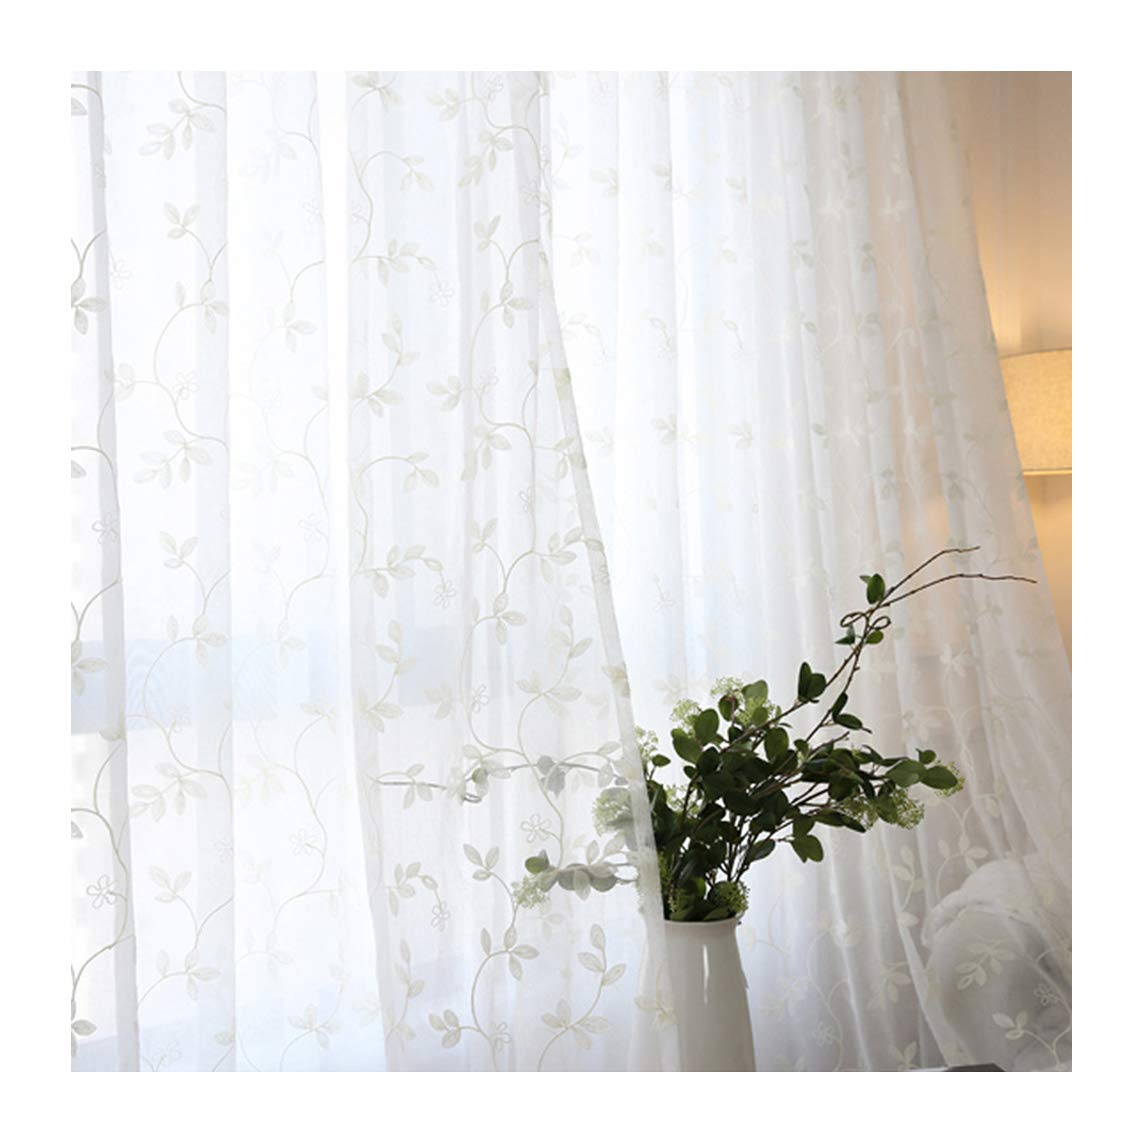 ASide BSide Transparent Window Decoration Lounge Style Rod Pocket Top Sheer Curtains Branch Blade For Children Room Sitting Room and Houseroom (1 Panel, W 52 x L 63 inch, White)